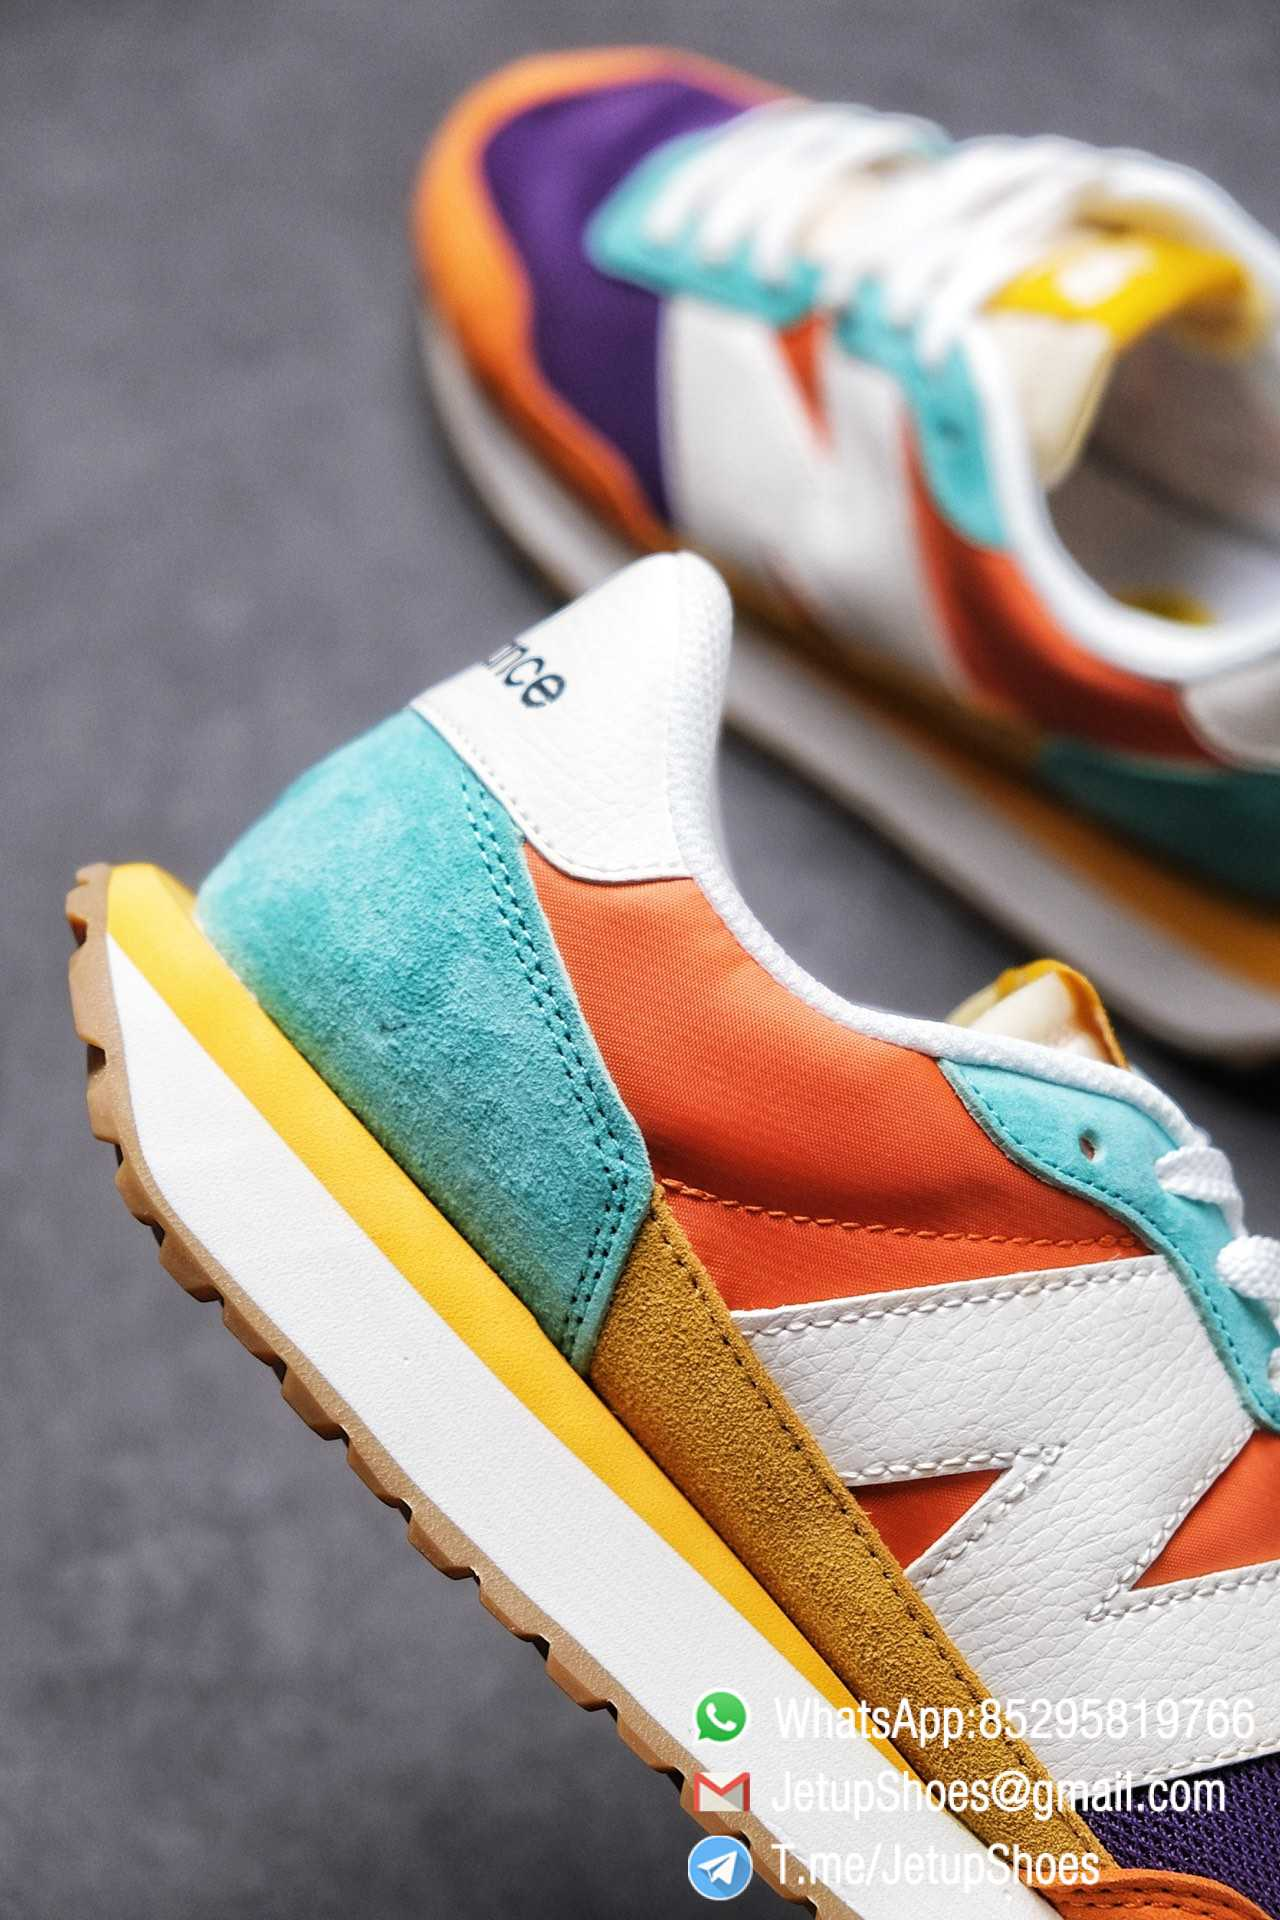 Best Replica New Balance 237 Yellow Blue Orange Suede Purple Mesh Stitching SKU MS237LB2 High Quality Fake Multi Color Running Shoes 06